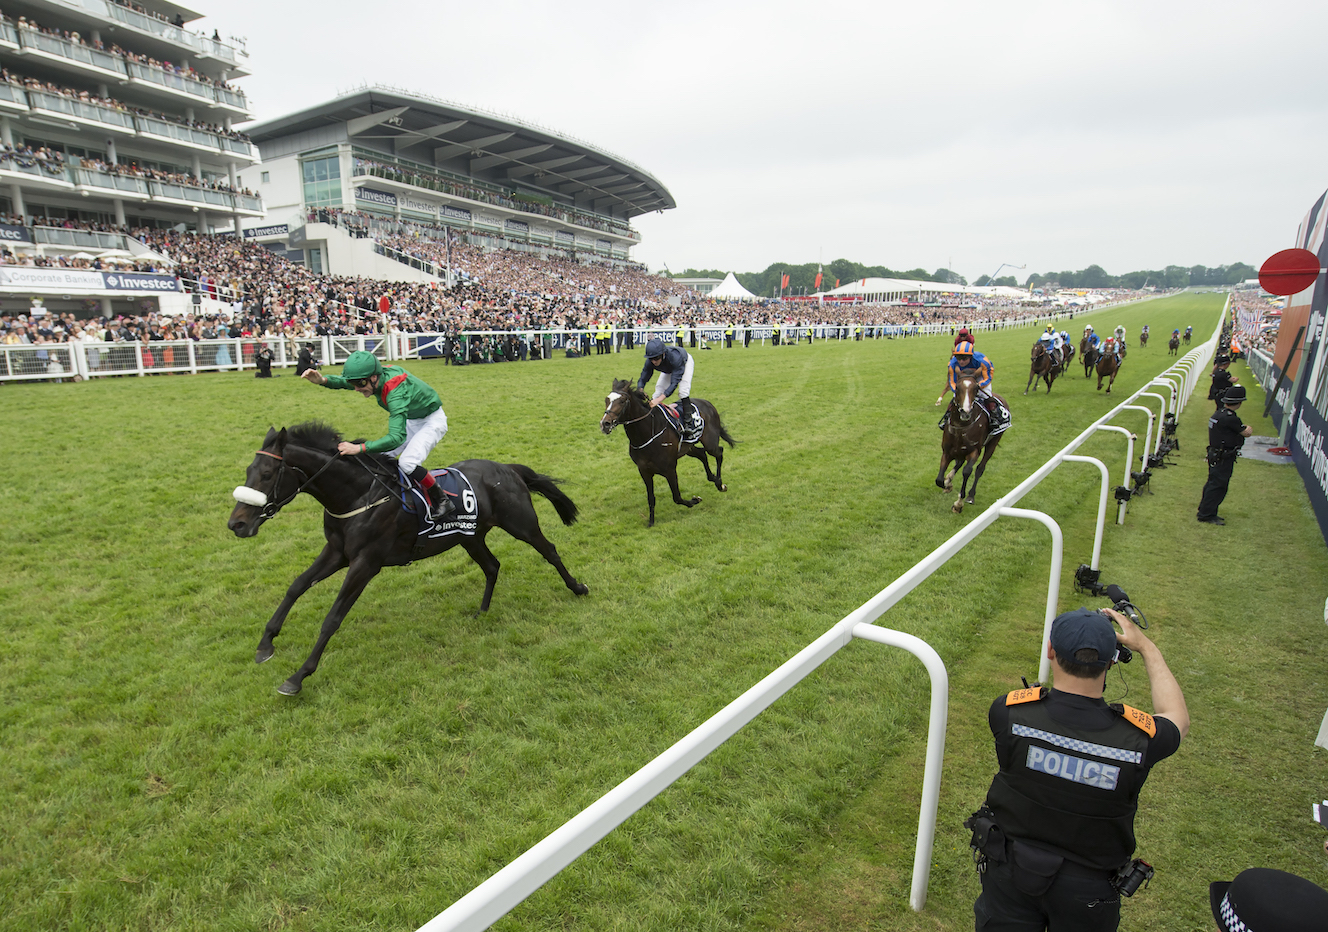 Harzand, a son of Hazariya by Sea The Stars, winning the Epsom Derby in 2016